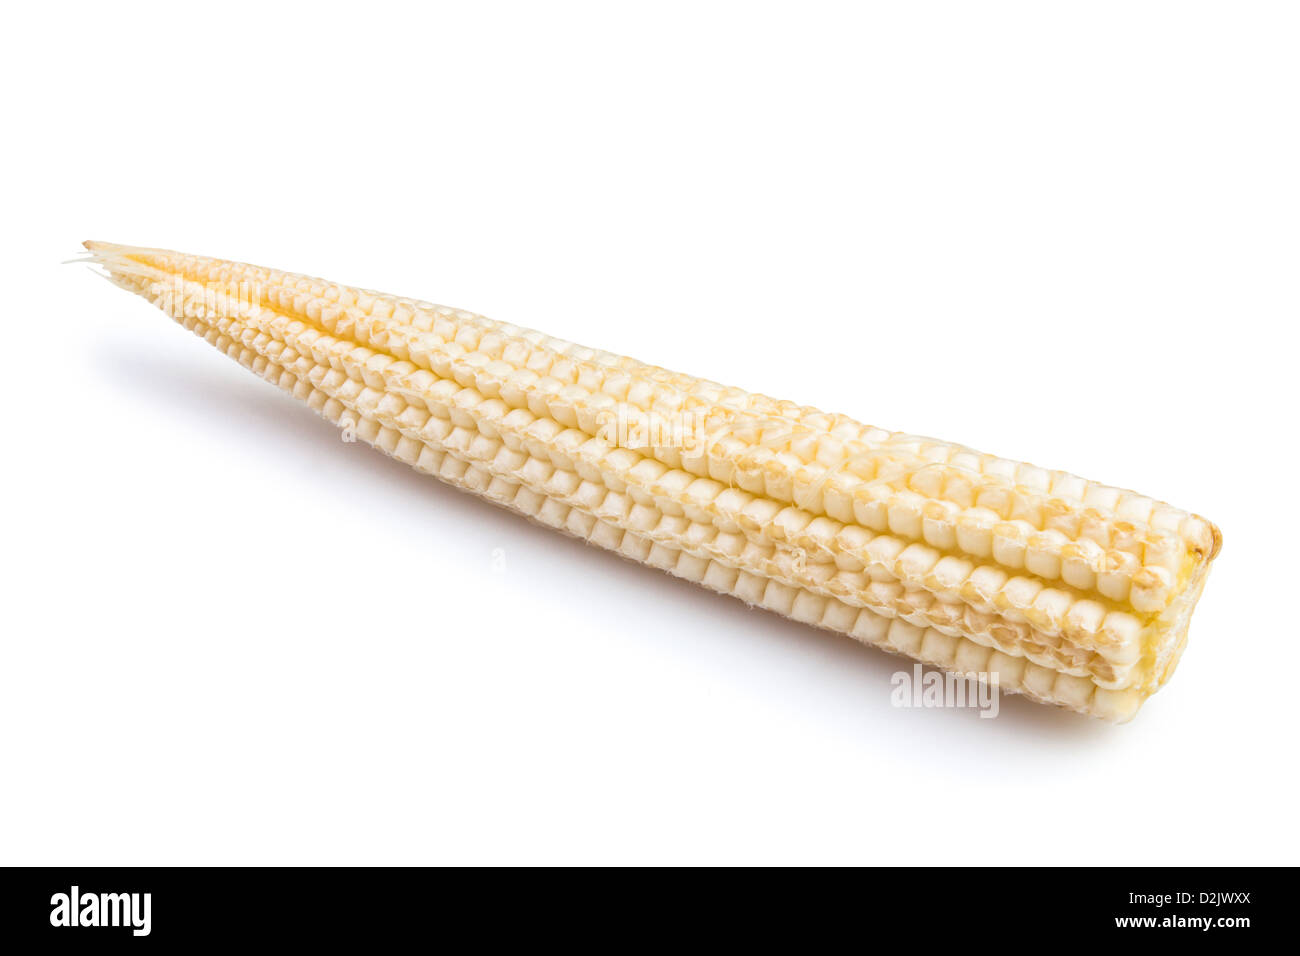 how to cook baby corn on the cob